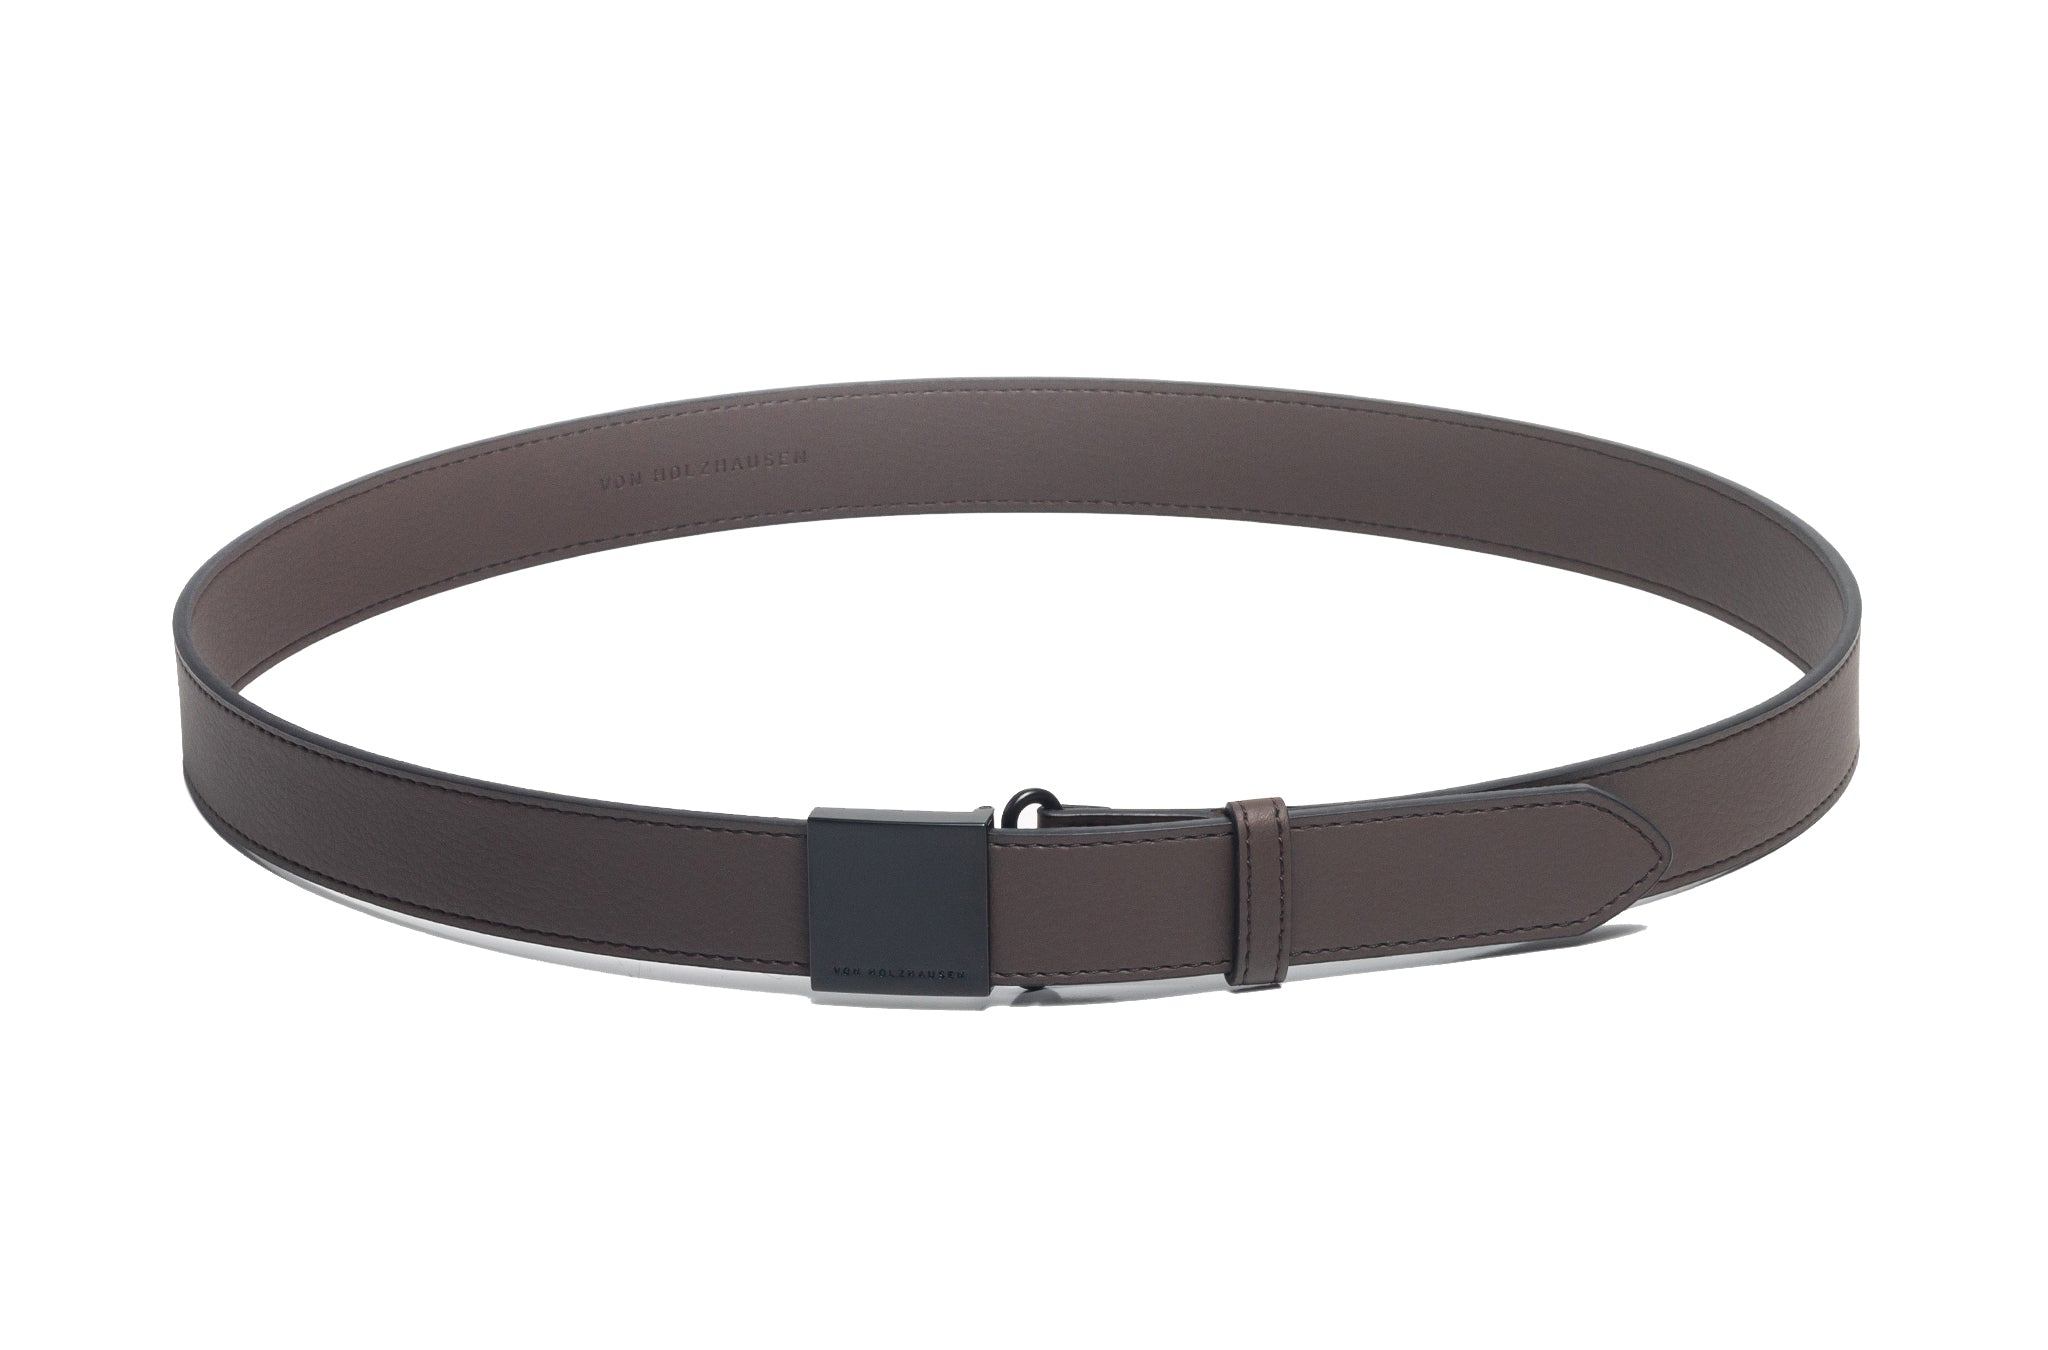 The Belt in Technik-Leather in Taupe